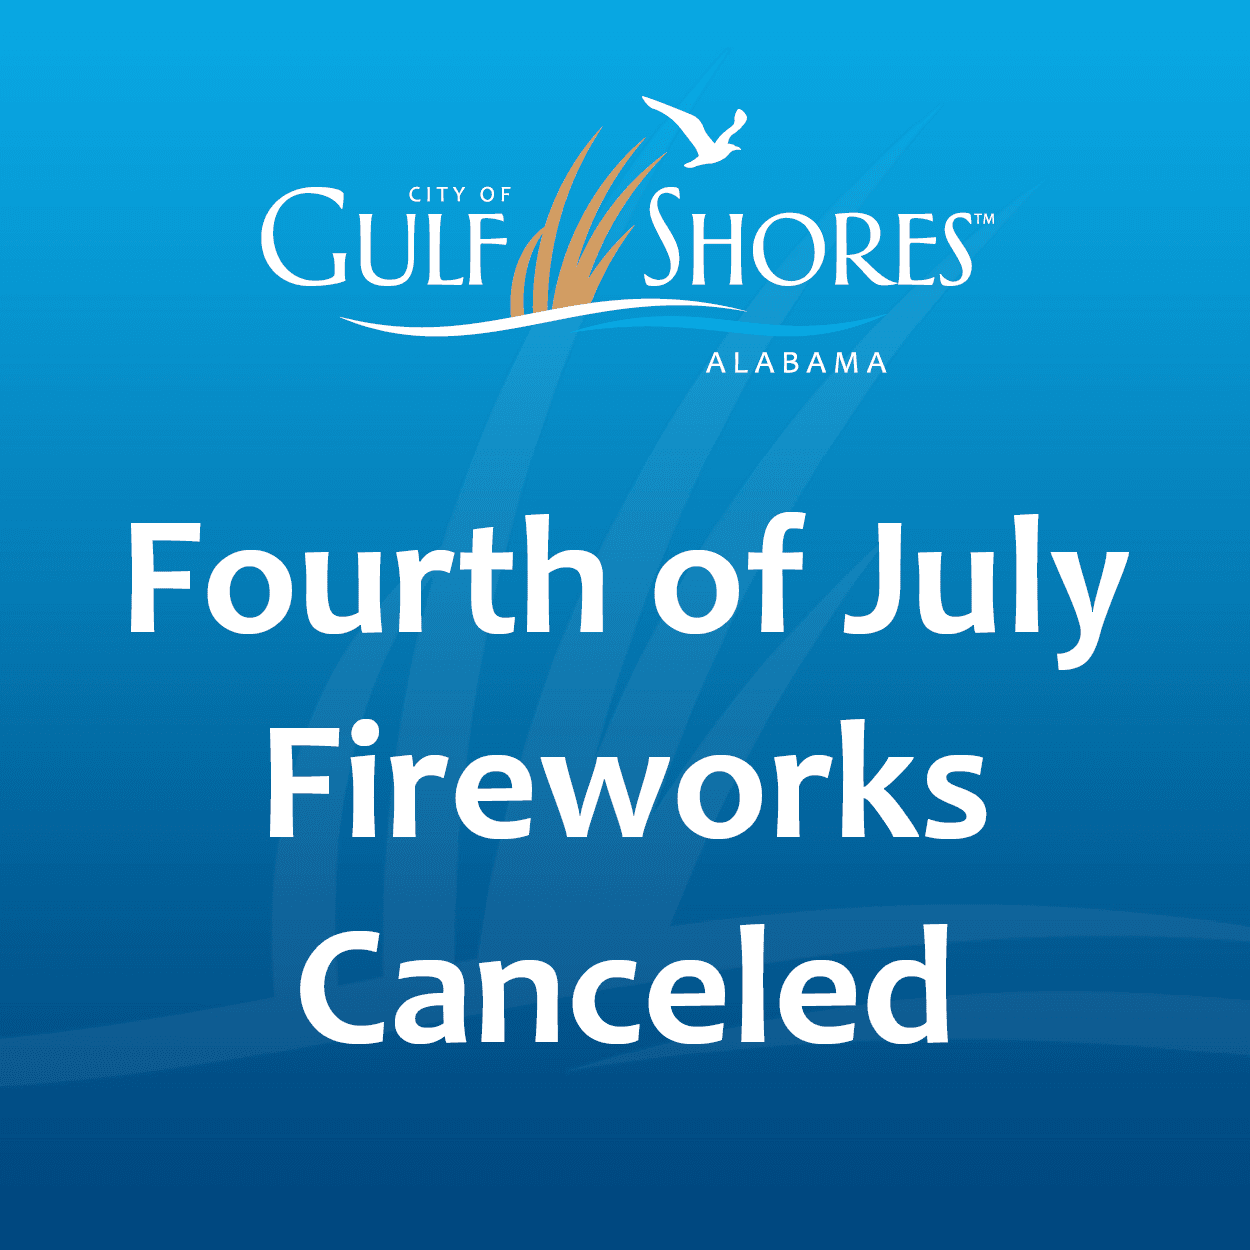 Fourth of July fireworks canceled